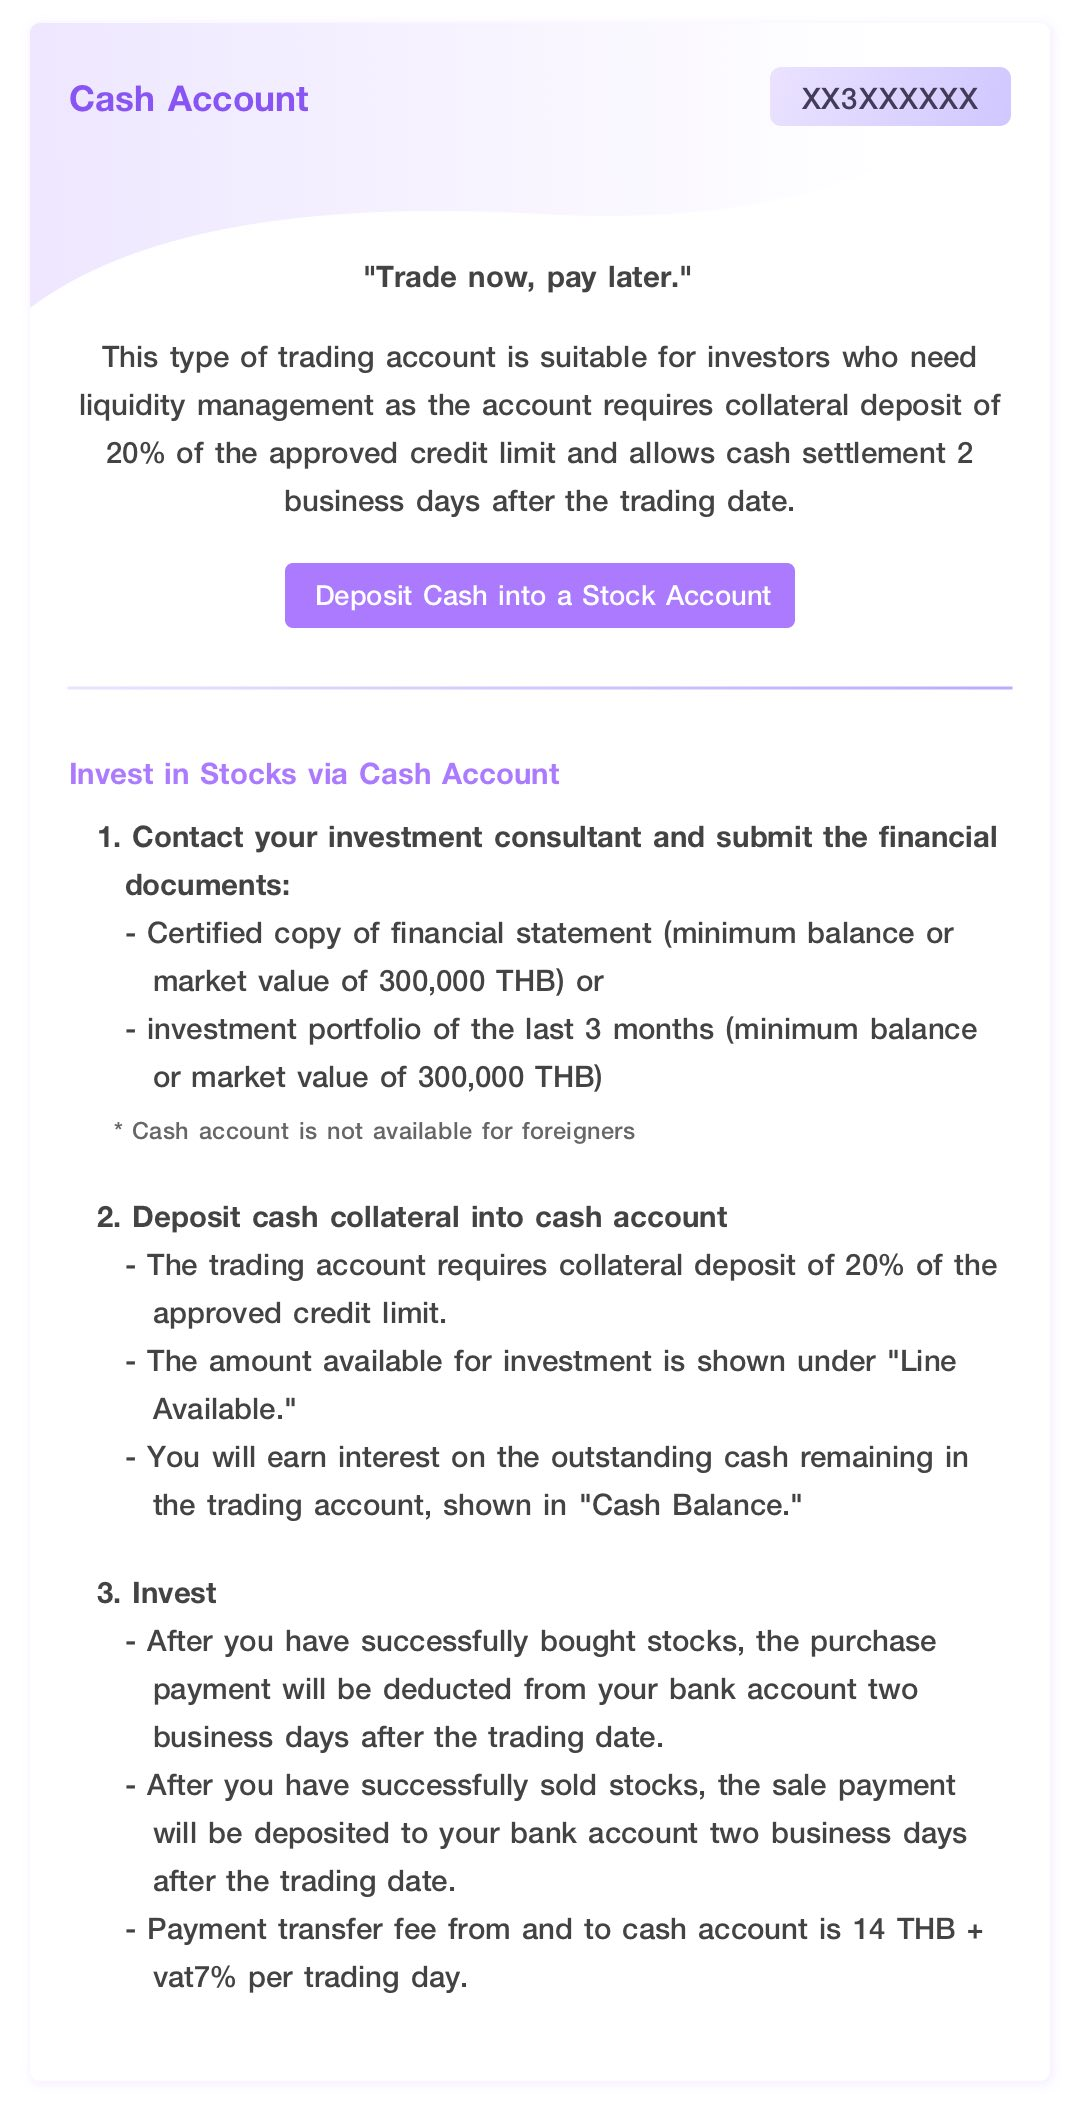 Cash Account. Trade now, pay later. This type of trading account is suitable for investors who need liquidity management as the account requires collateral deposit of 20% of the approved credit limit and allows cash settlement 2 business days after the trading date.